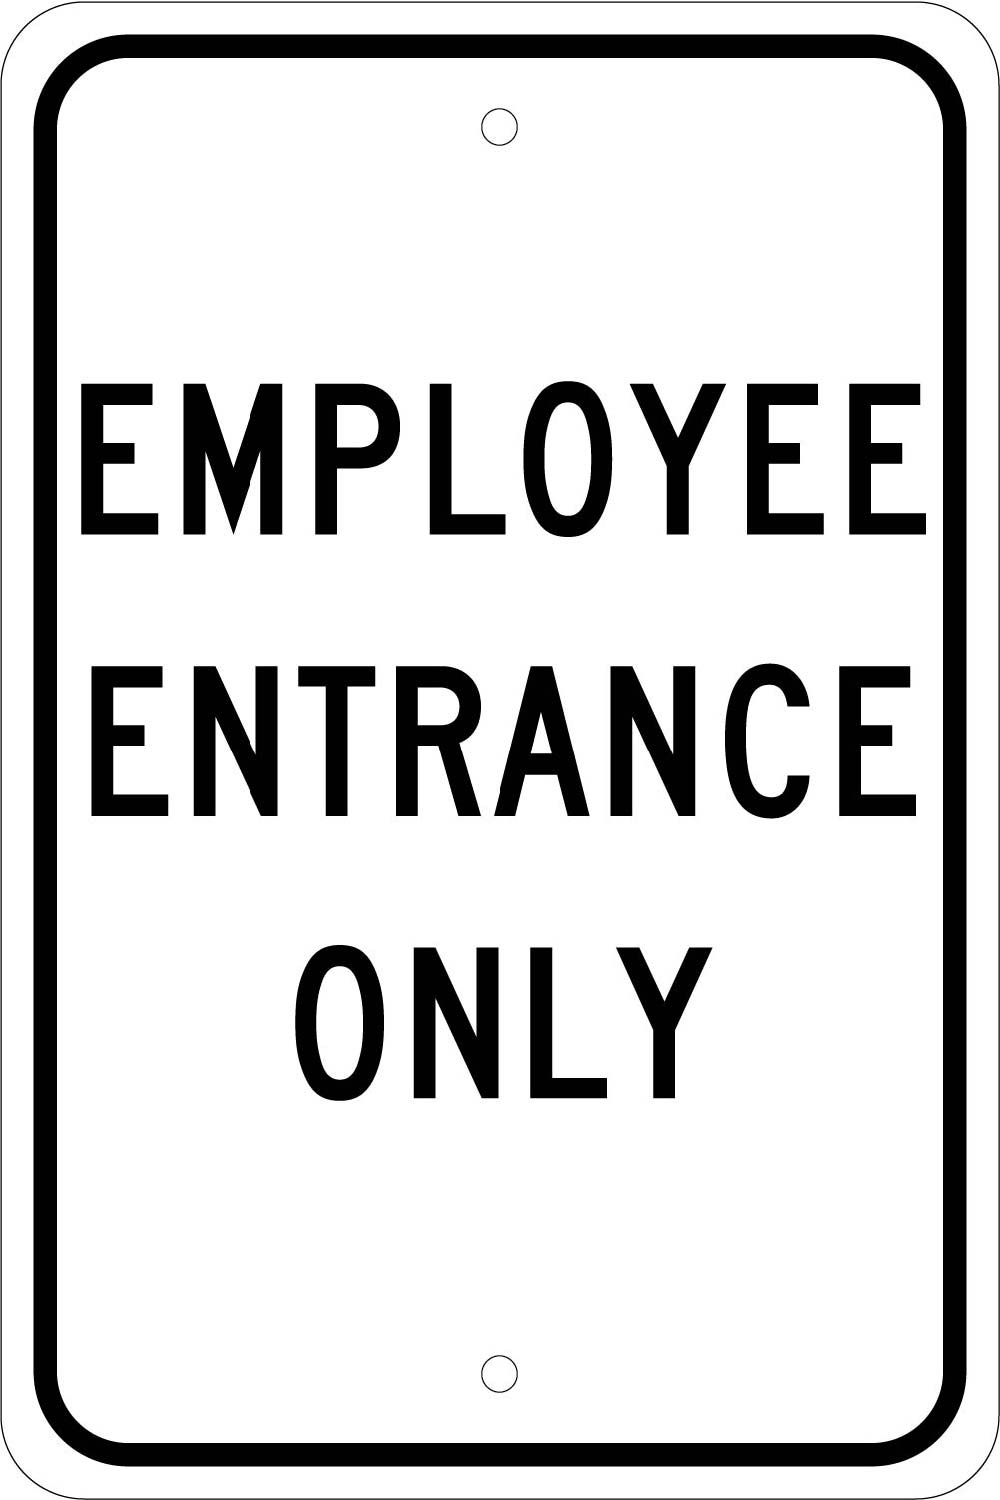 Employee Entrance Only Sign